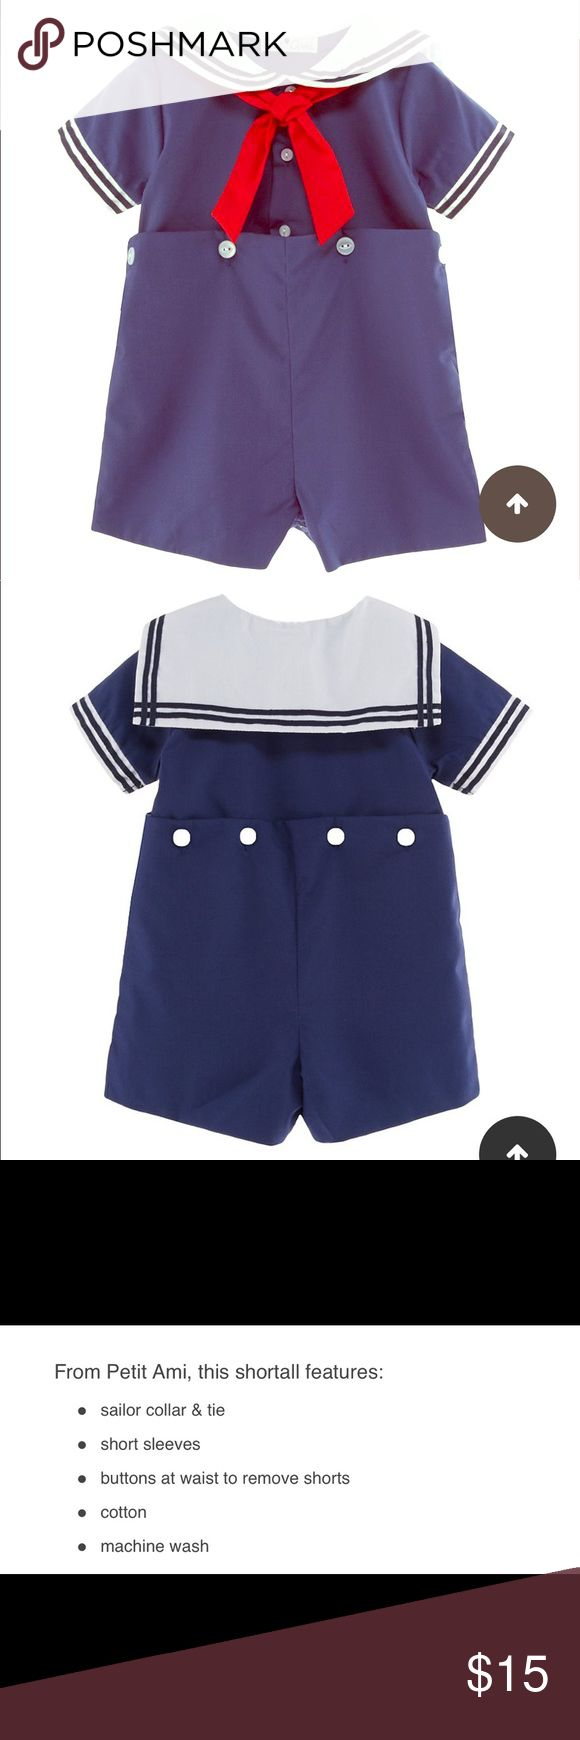 Petit Ami sailor outfit How cute is this 😊 navy white n red colors. 65% polyester 35% cotton petit ami One Pieces Bodysuits